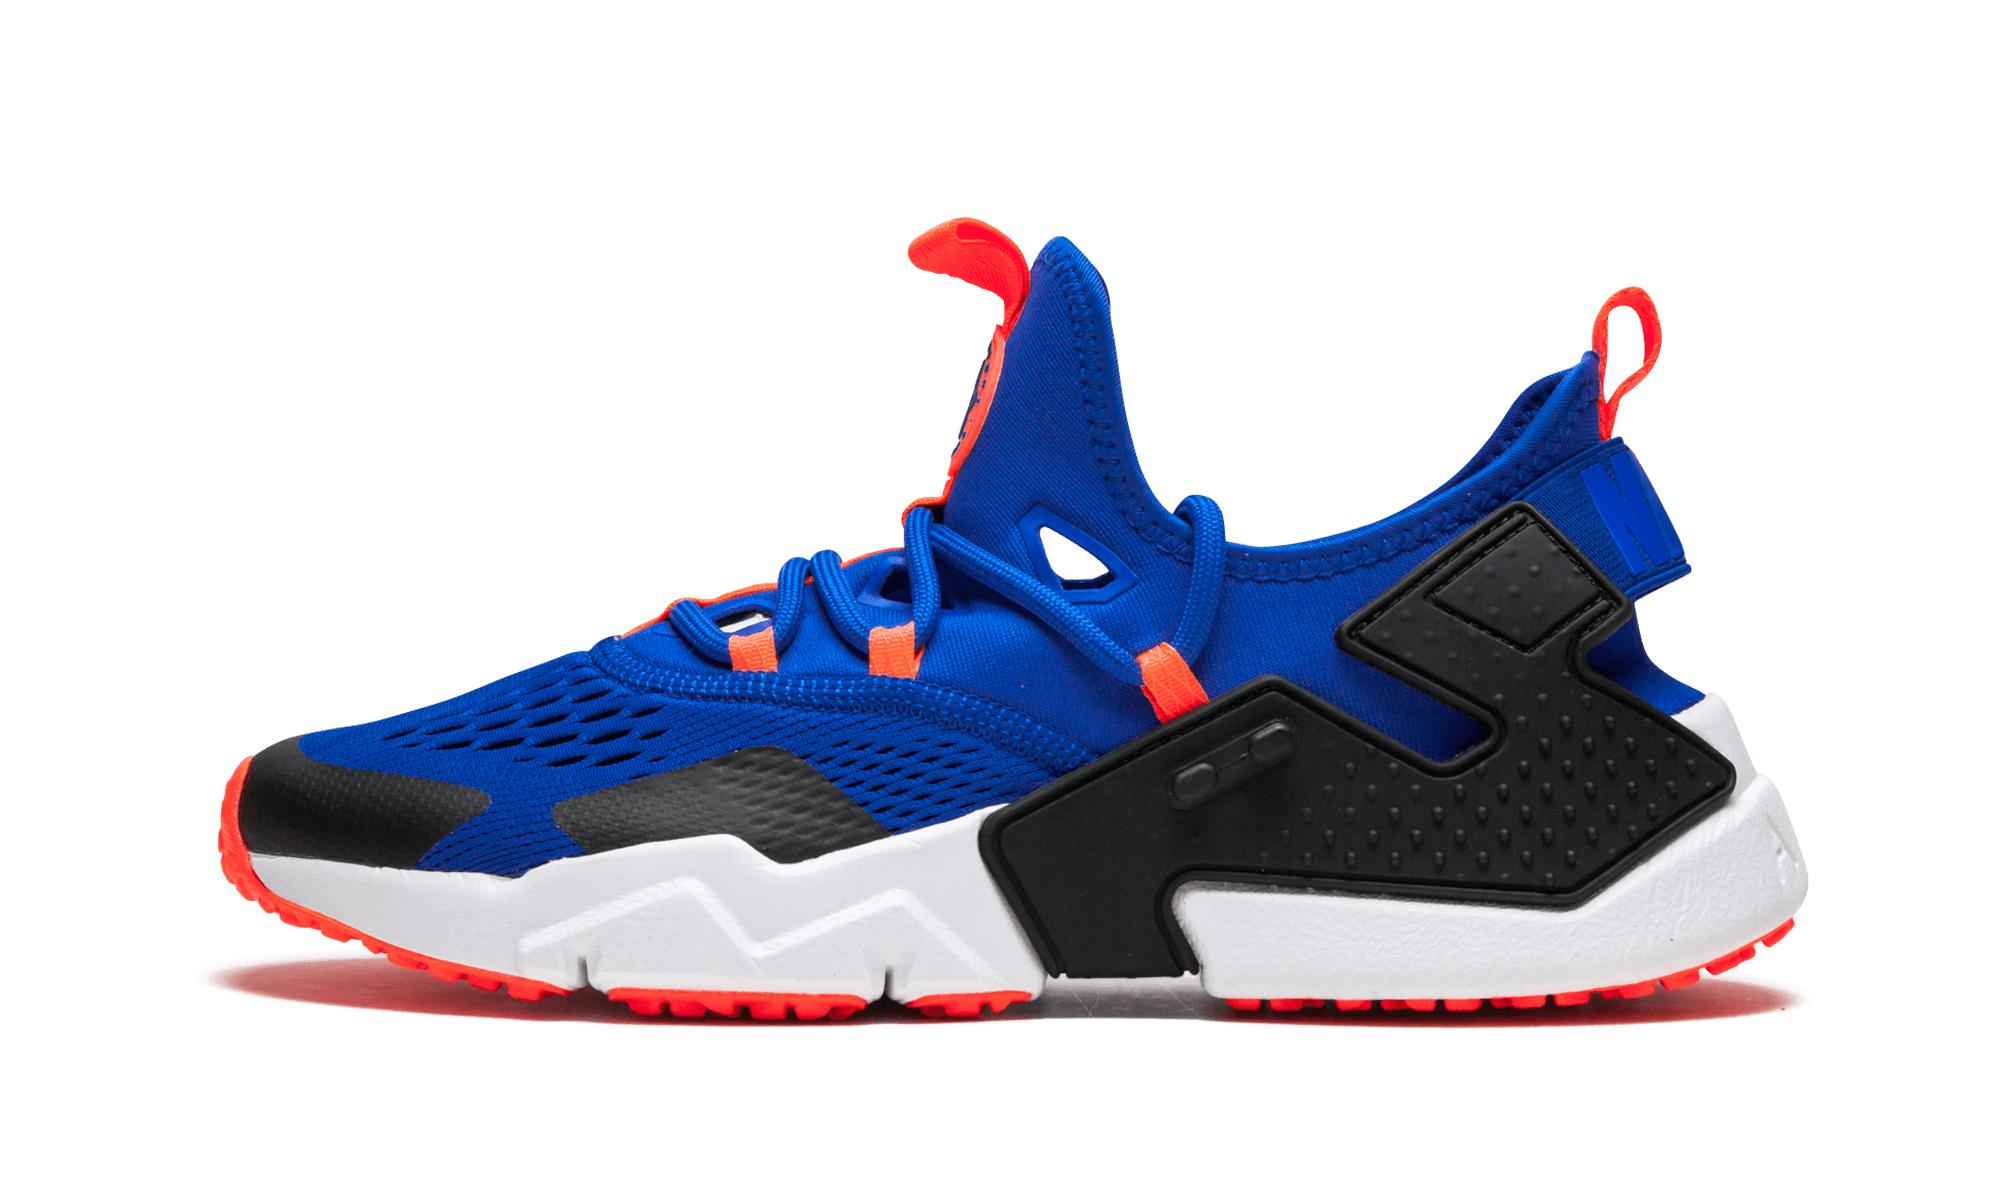 low priced aa4f9 b9c78 Nike Air Huarache Drift Br in Blue for Men - Lyst